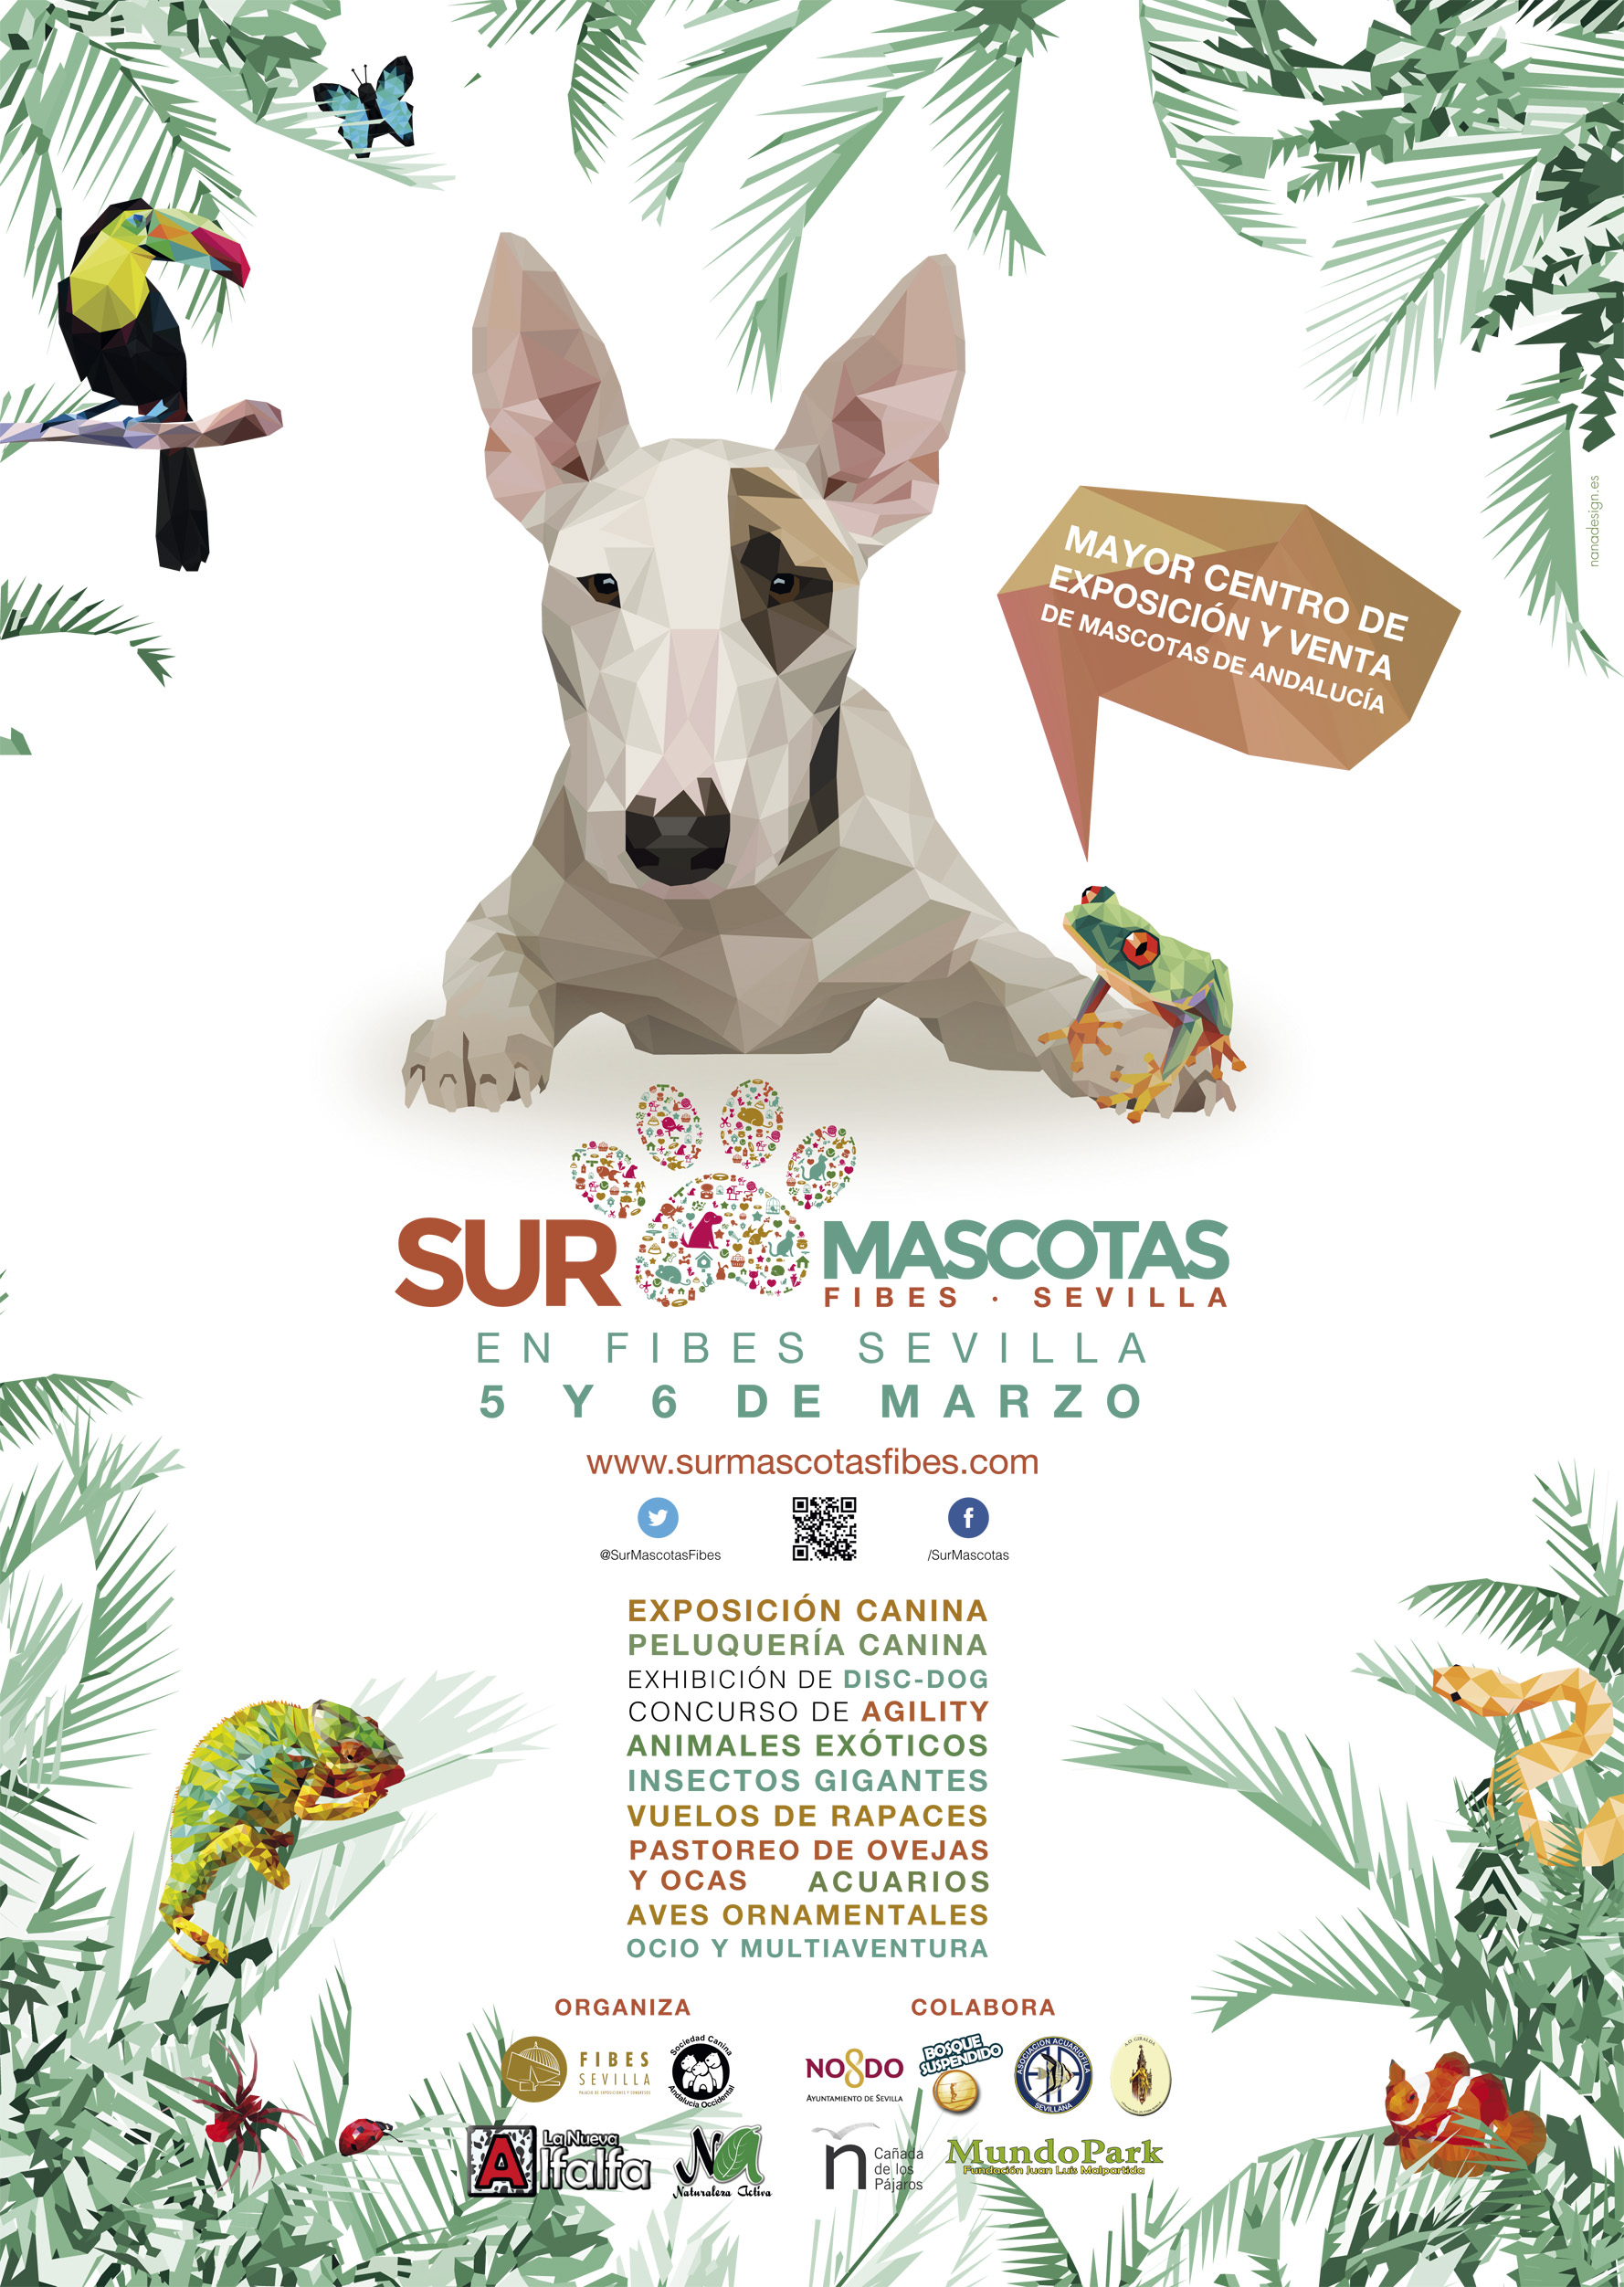 Arte Final English Sur Mascotas Will Be In Fibes Seville On The First Weekend Of